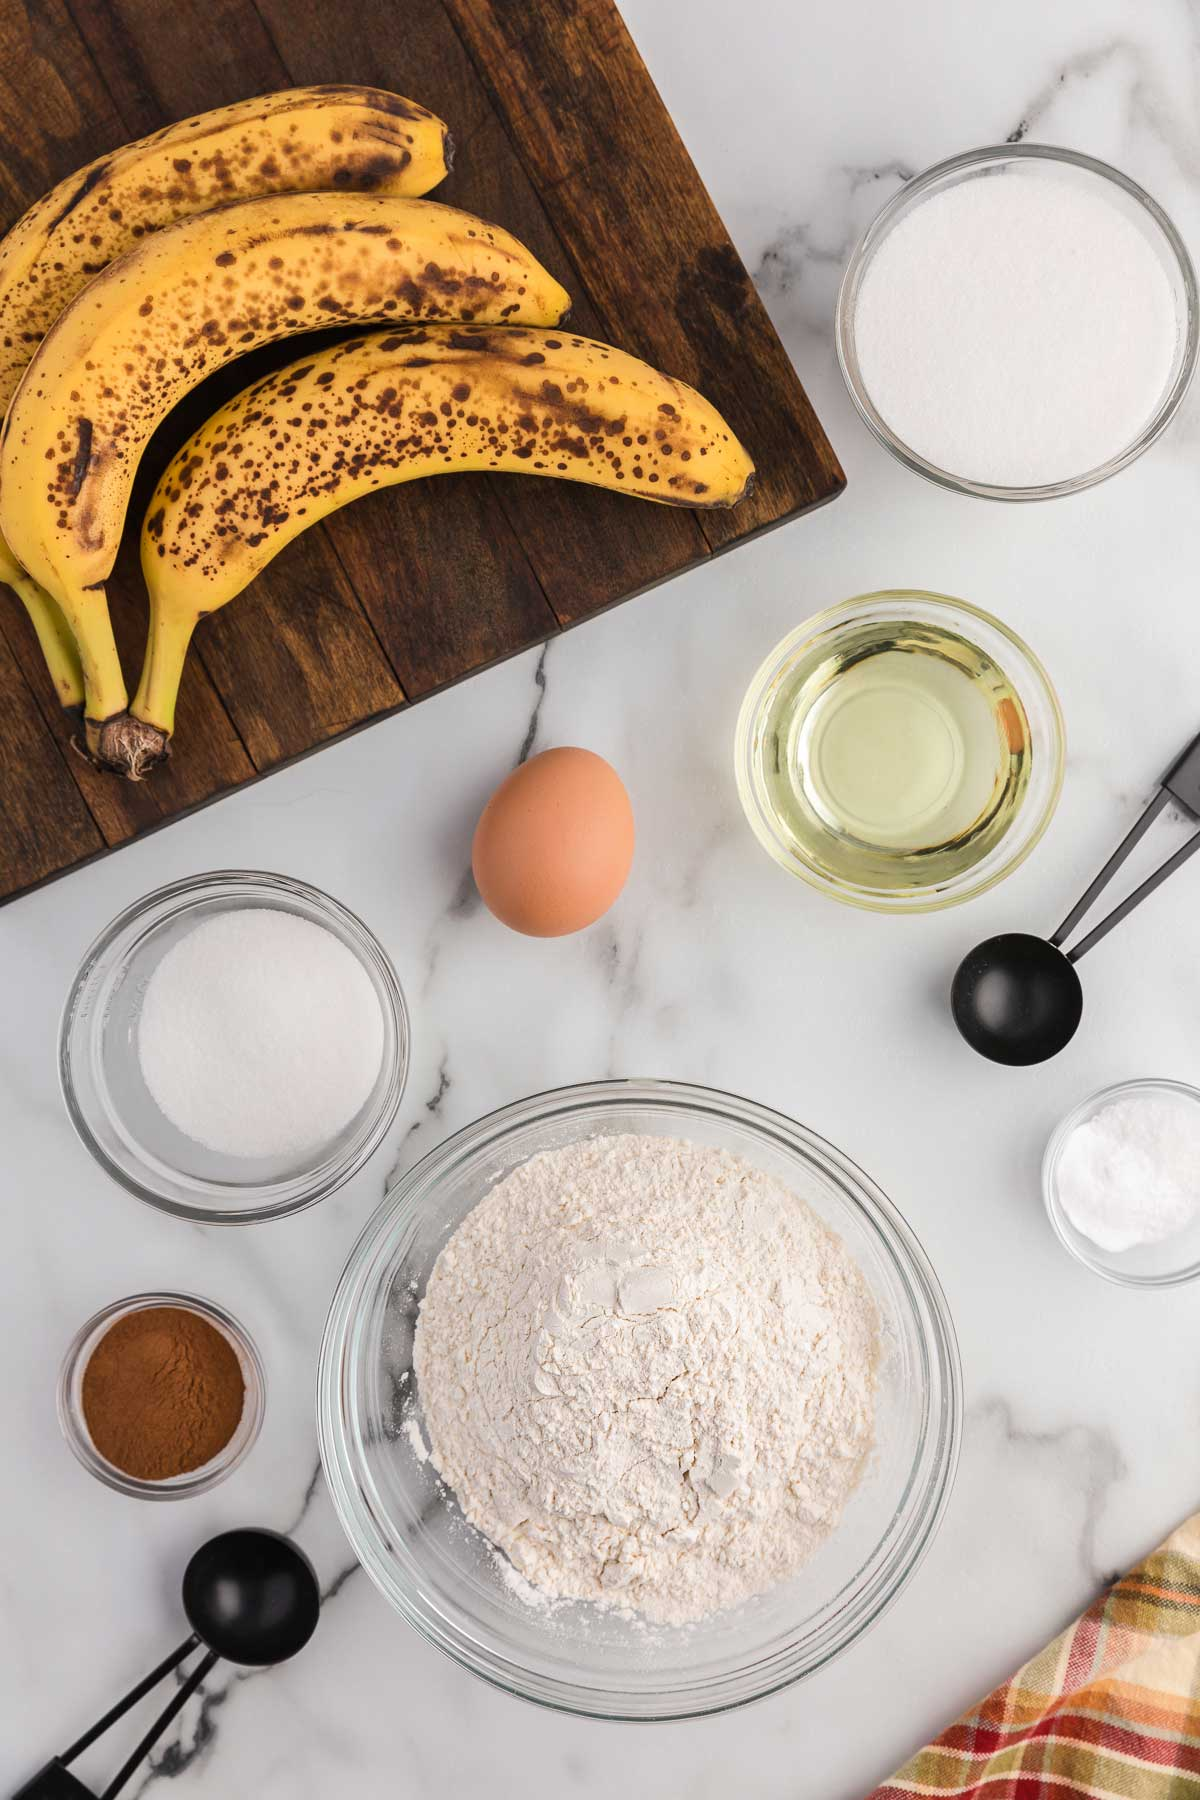 ingredients for the bread.